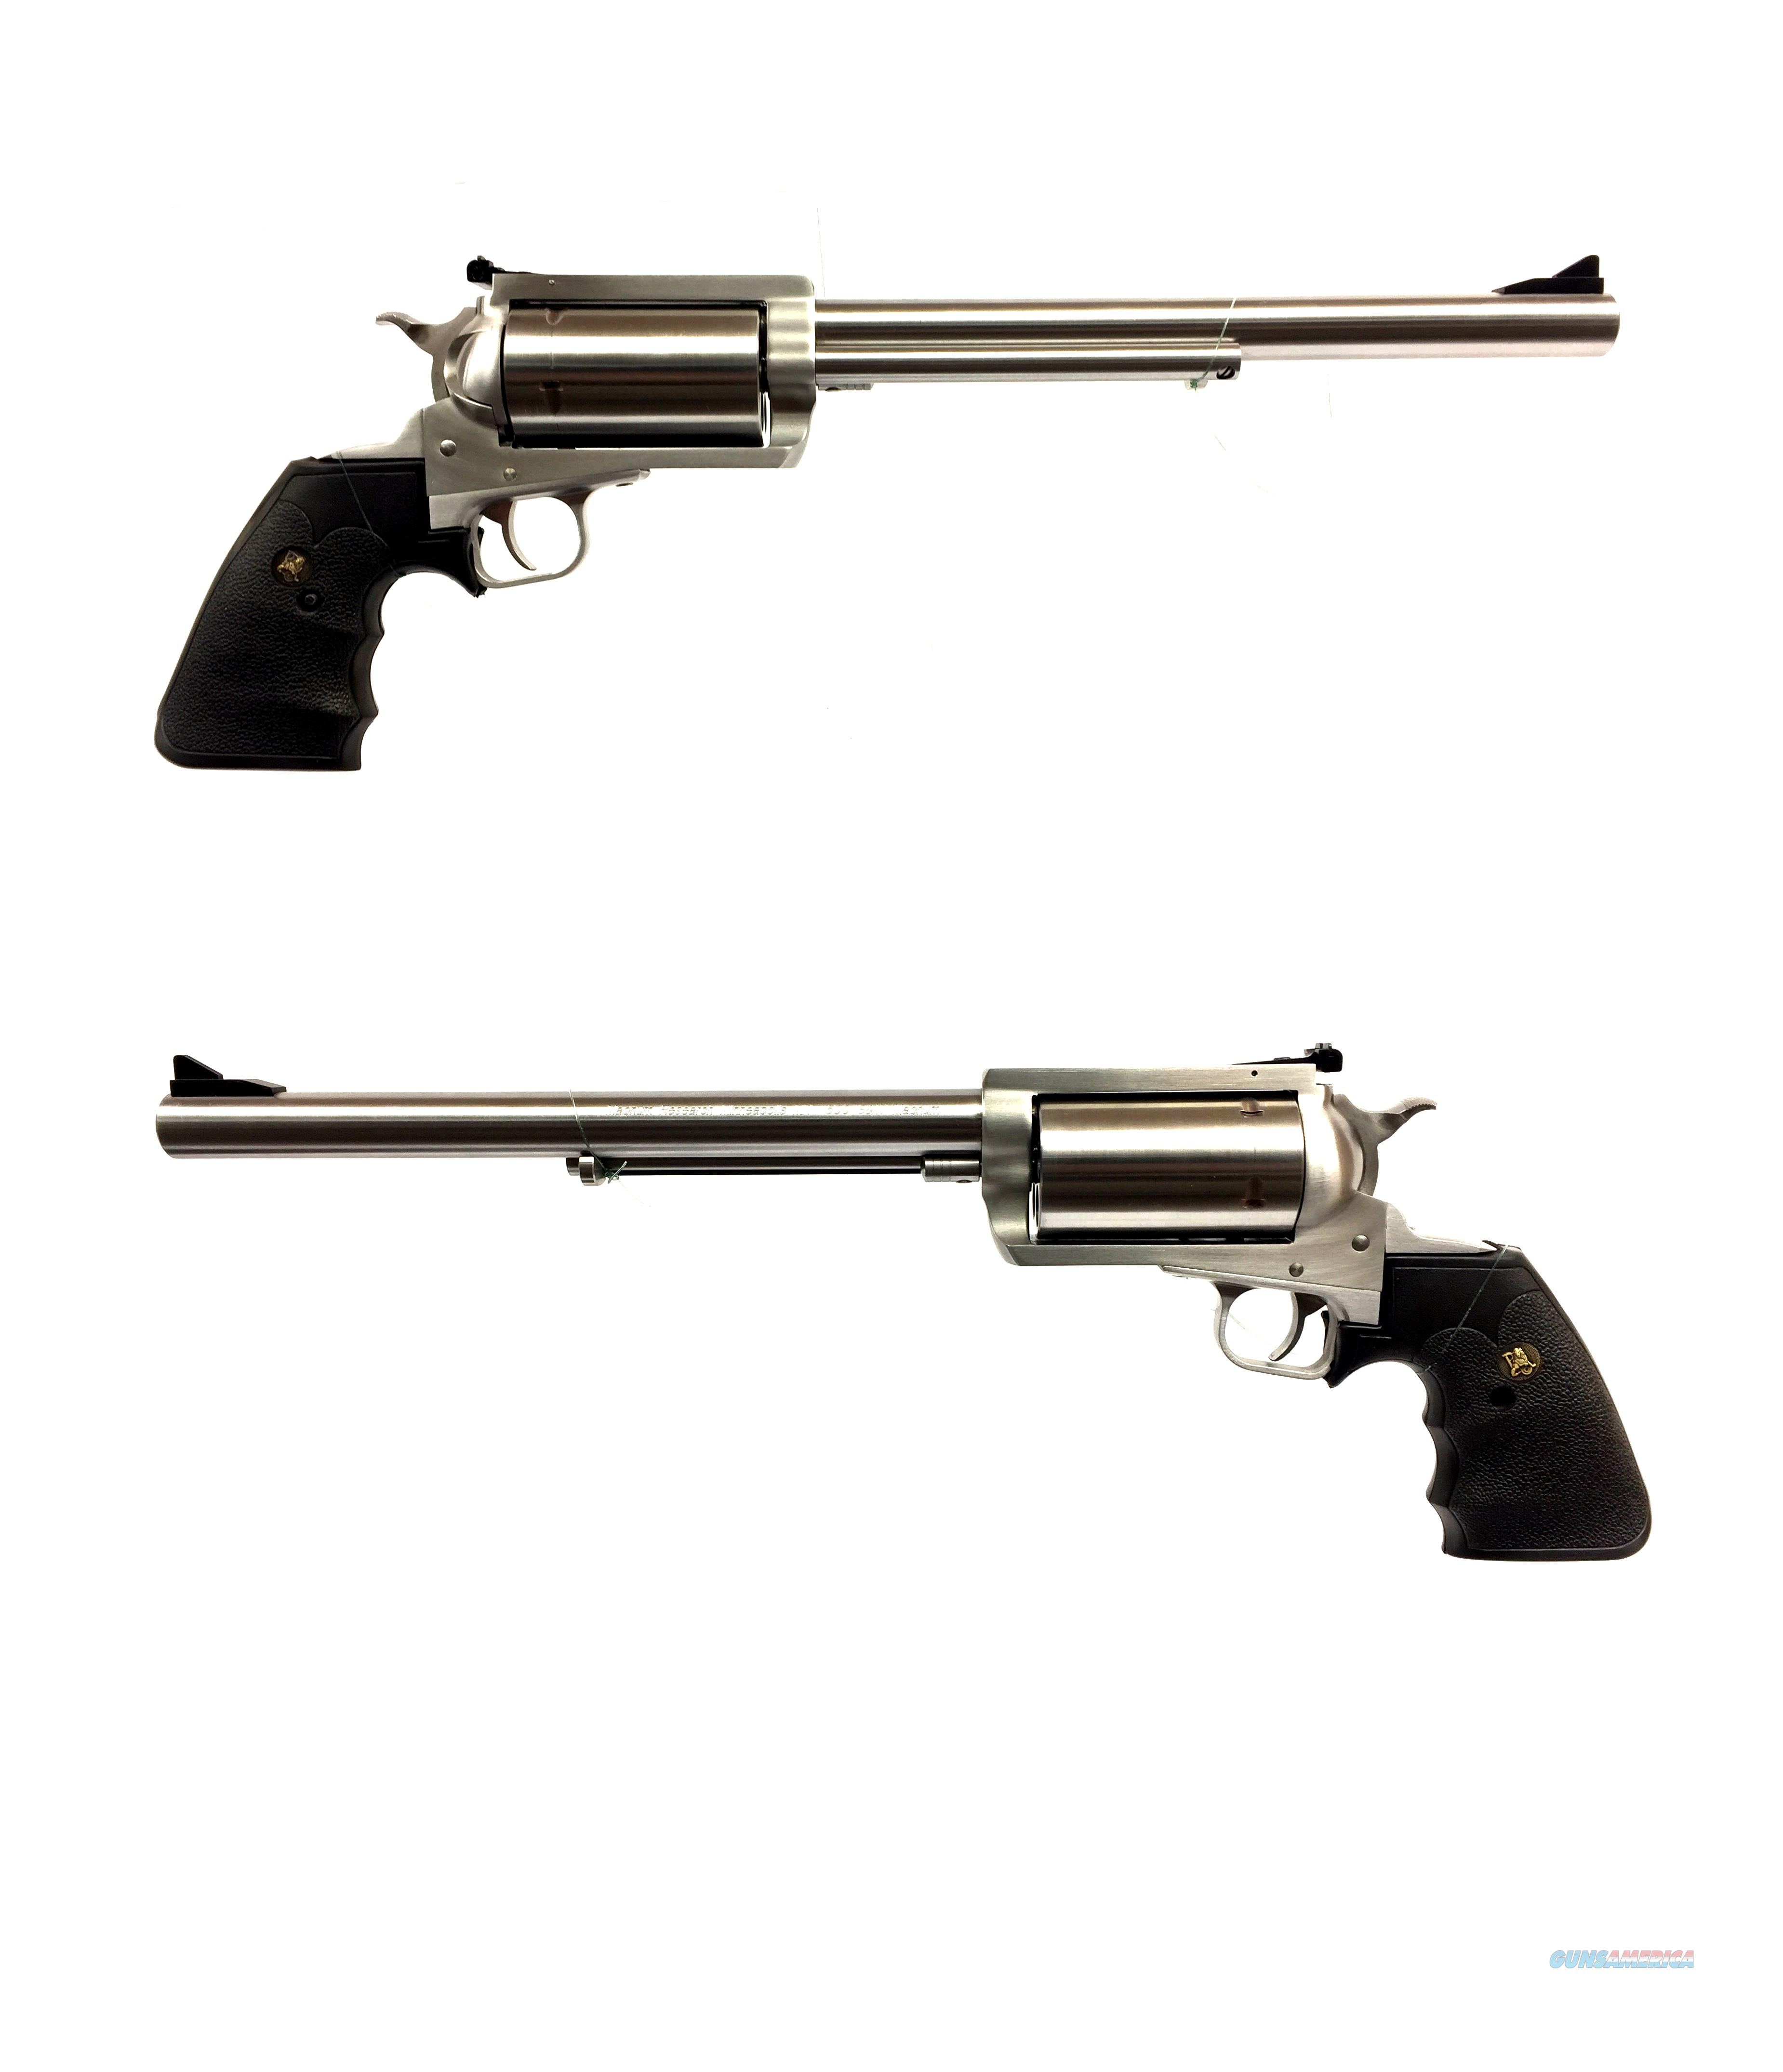 Magnum Research Bfr 500 S W Magnum Revolver For Sale